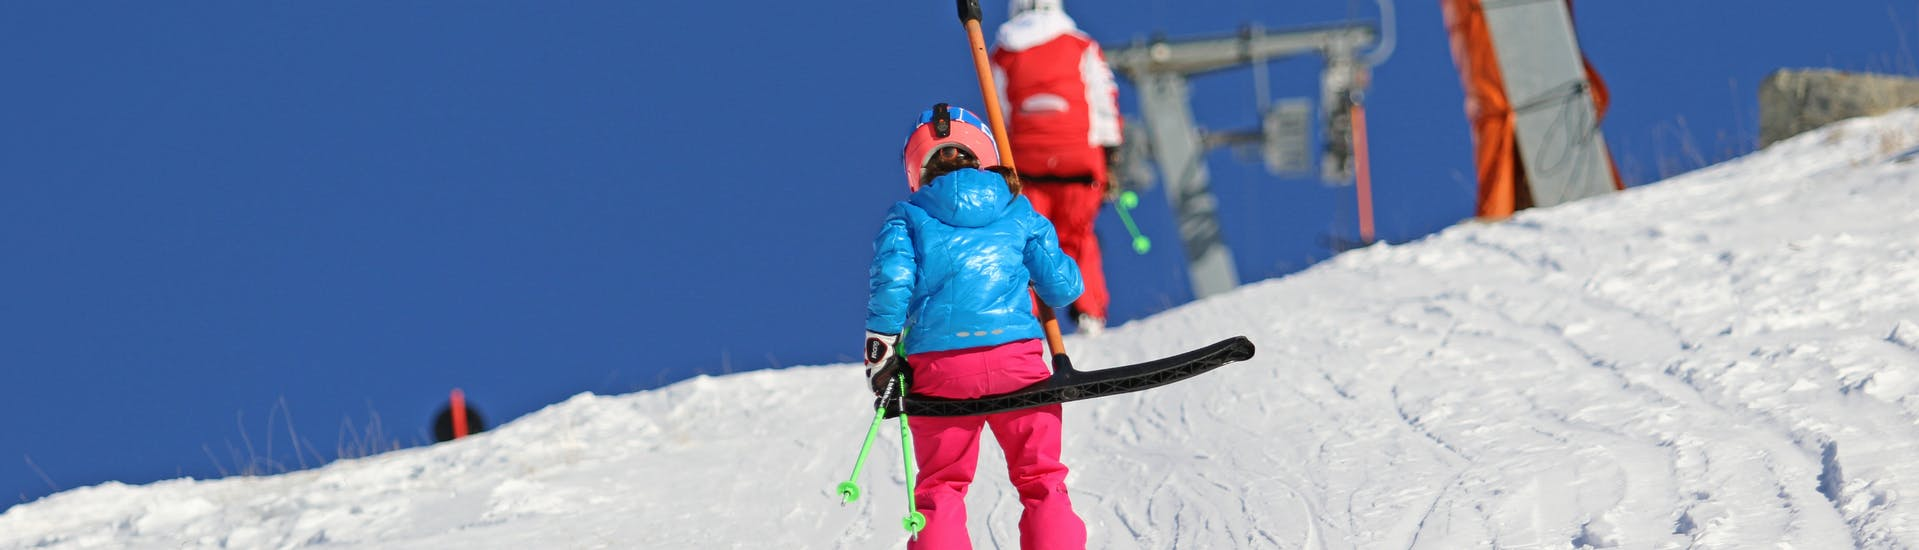 Private Ski Lessons for Kids in Belpiano/Haideralm with Skischule Pfunds - Hero image